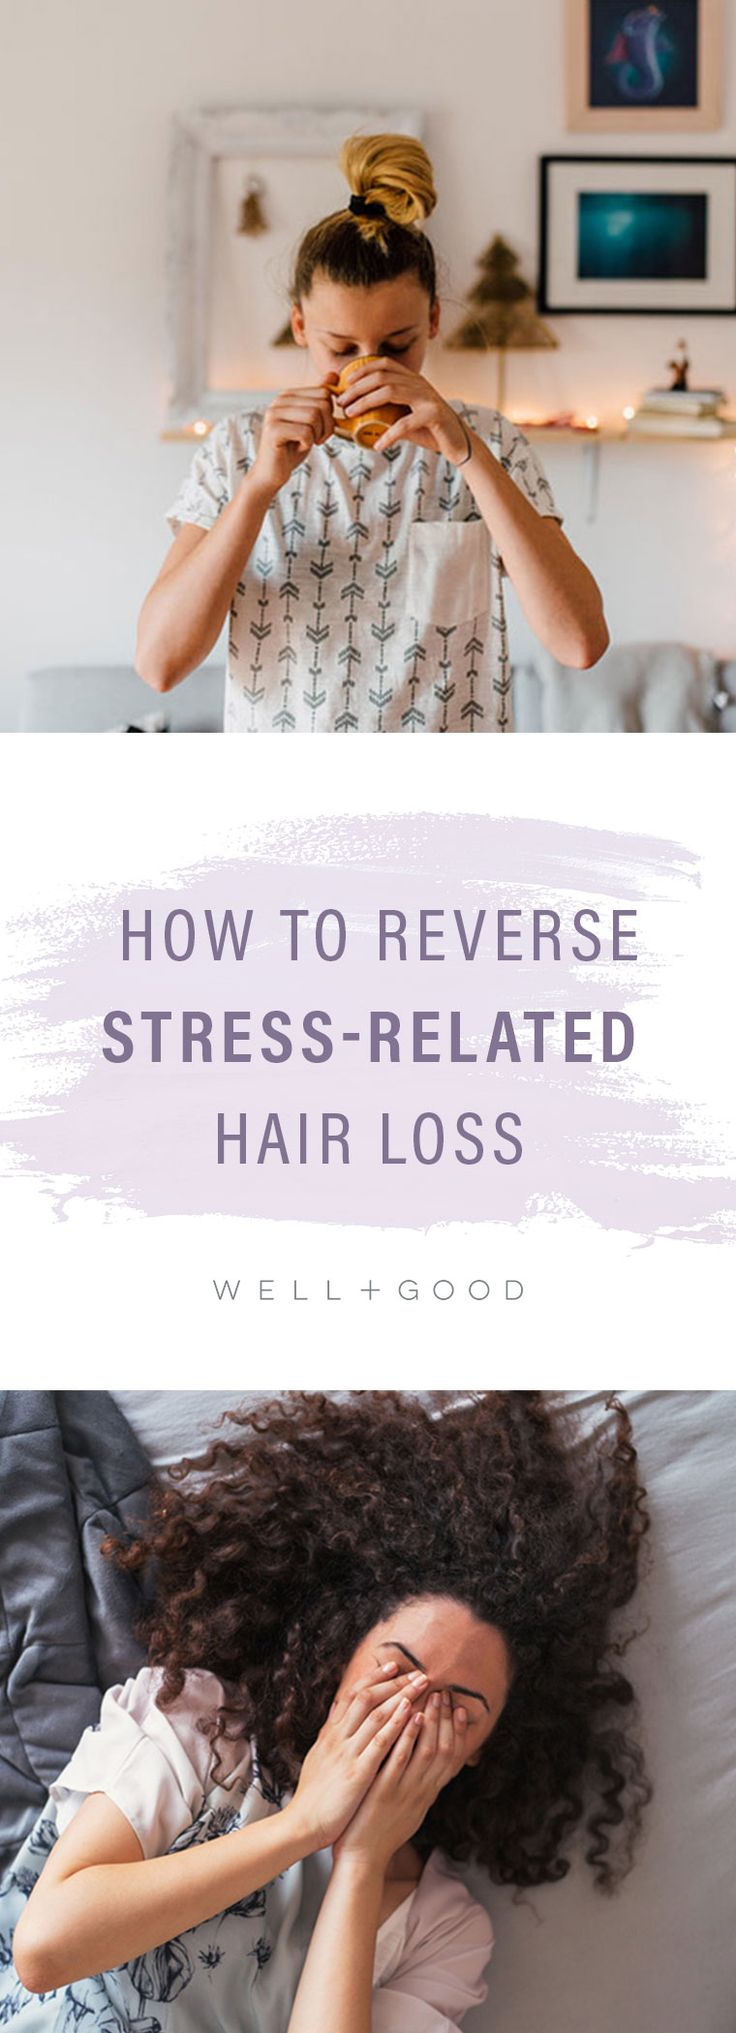 How to reverse hair loss from stress.